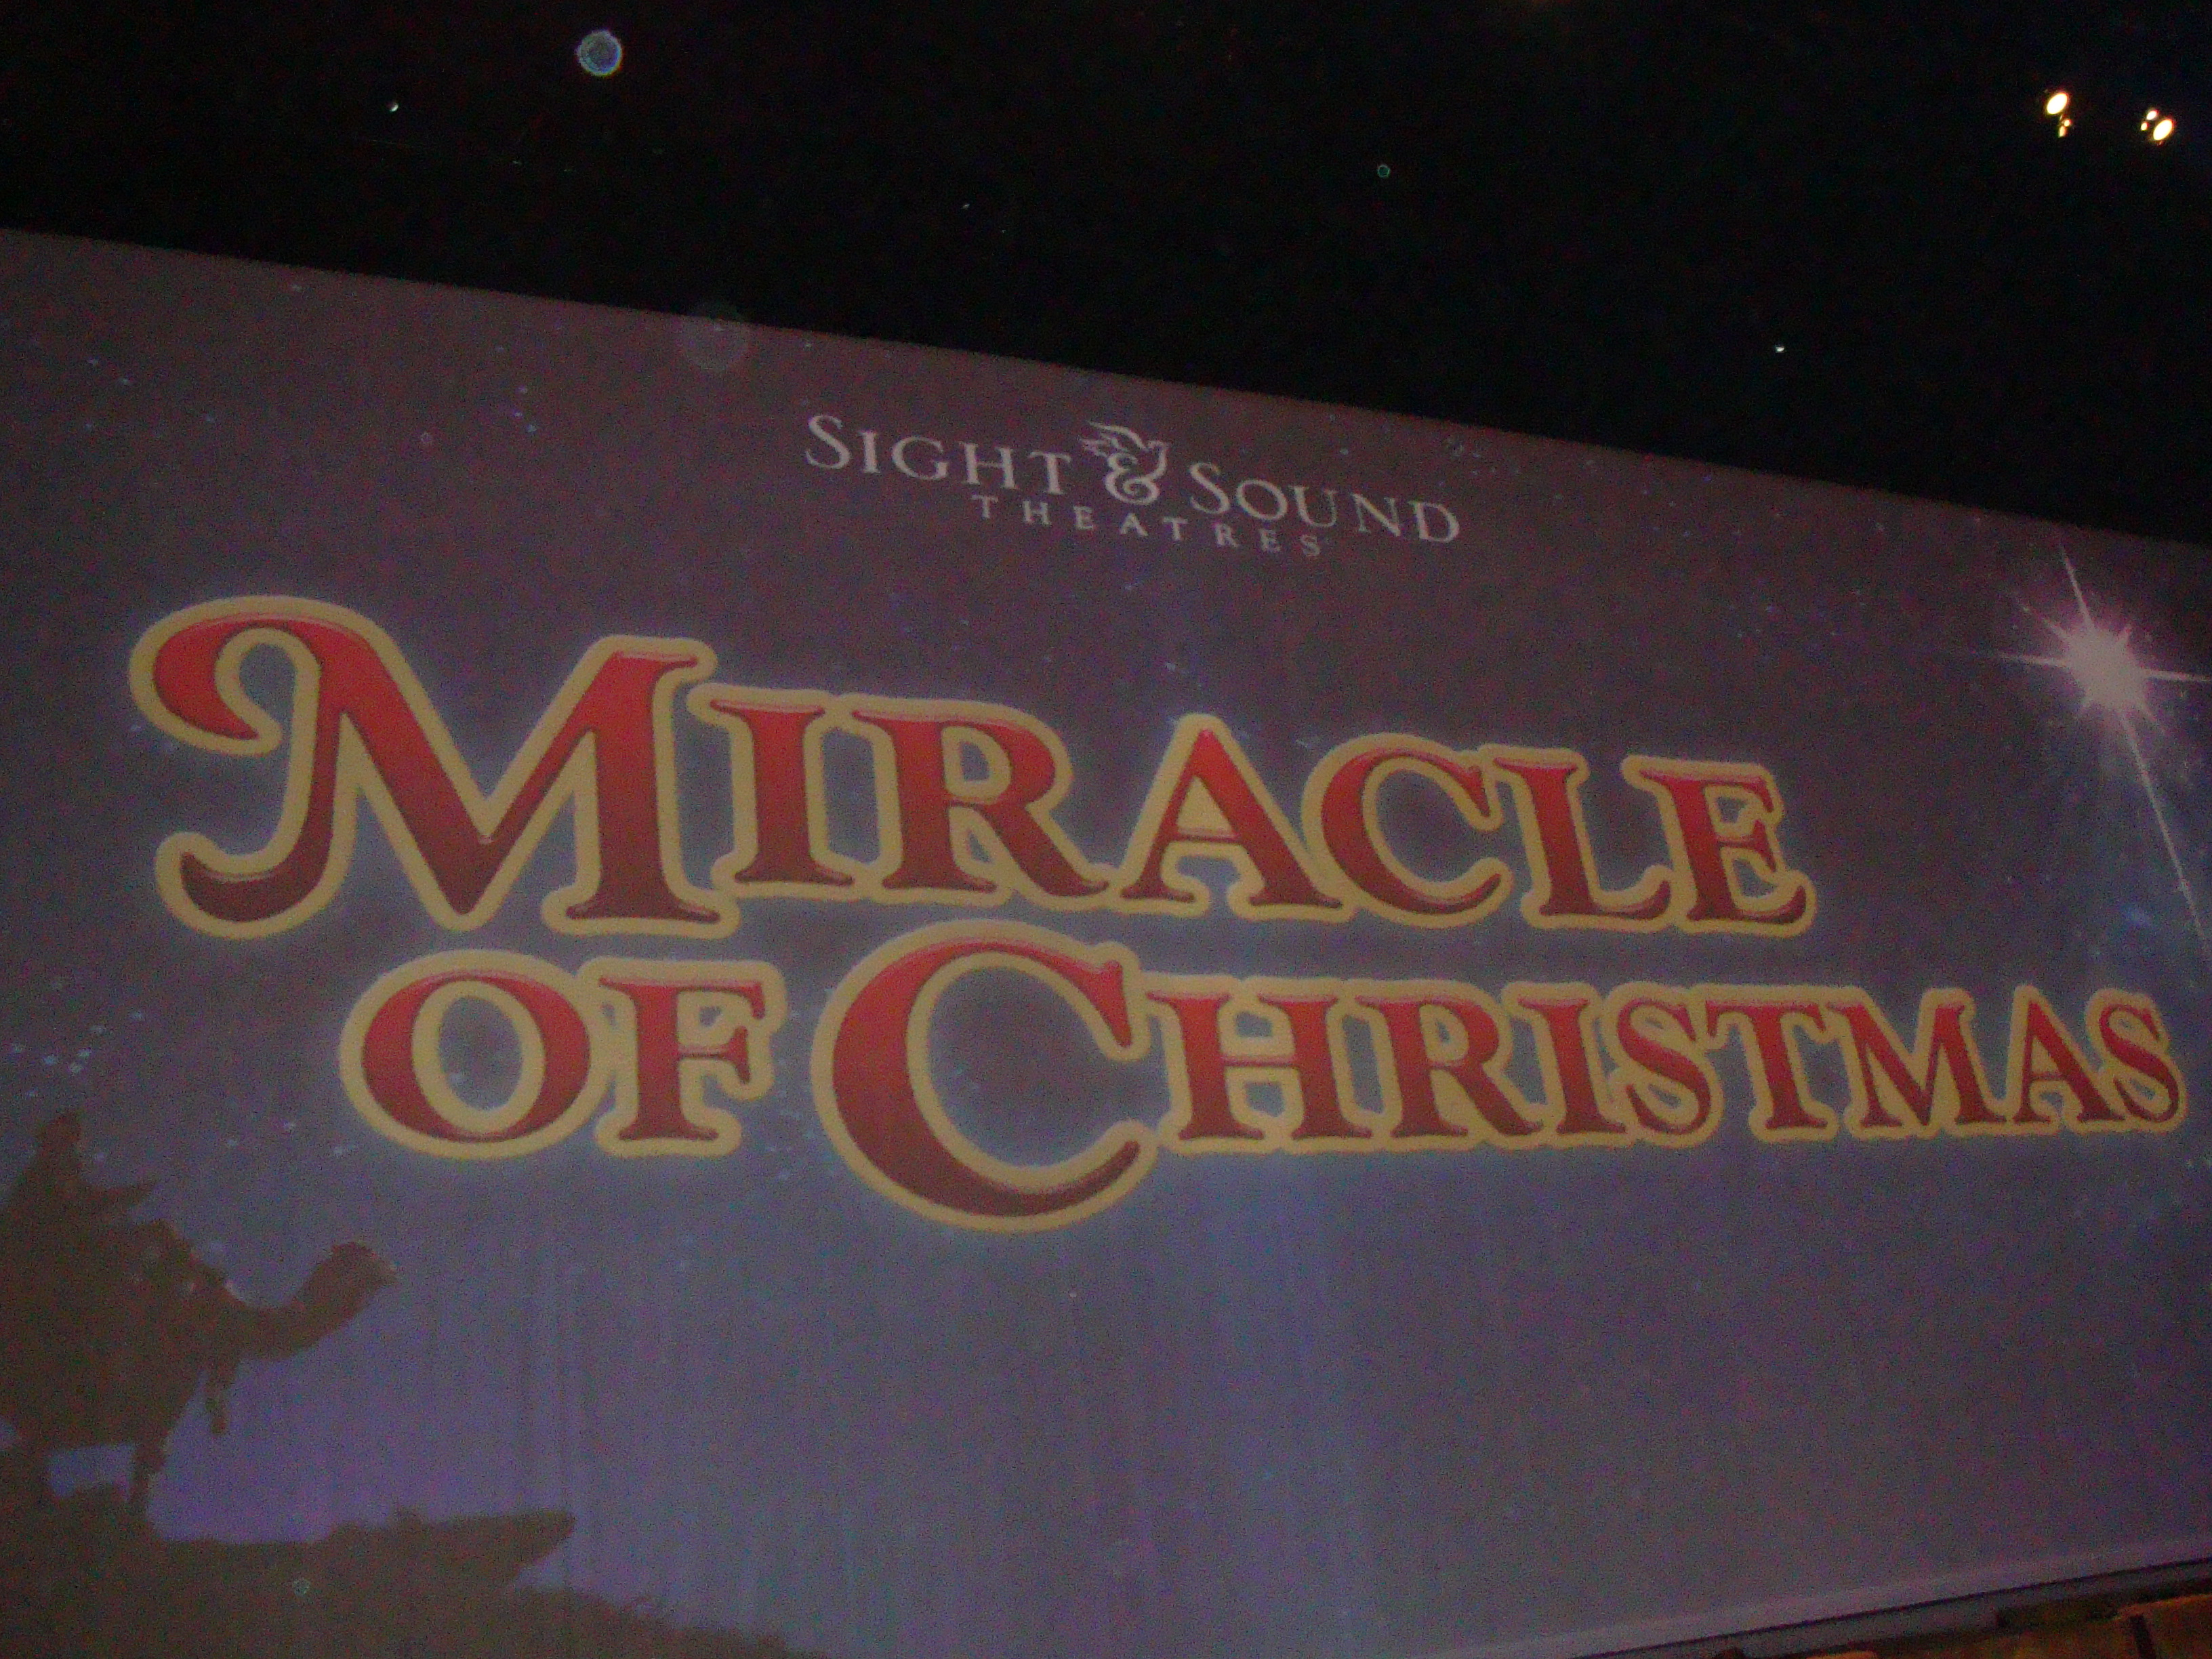 we were then whisked off to see the miracle of christmas show at the sight and sound theater what a show